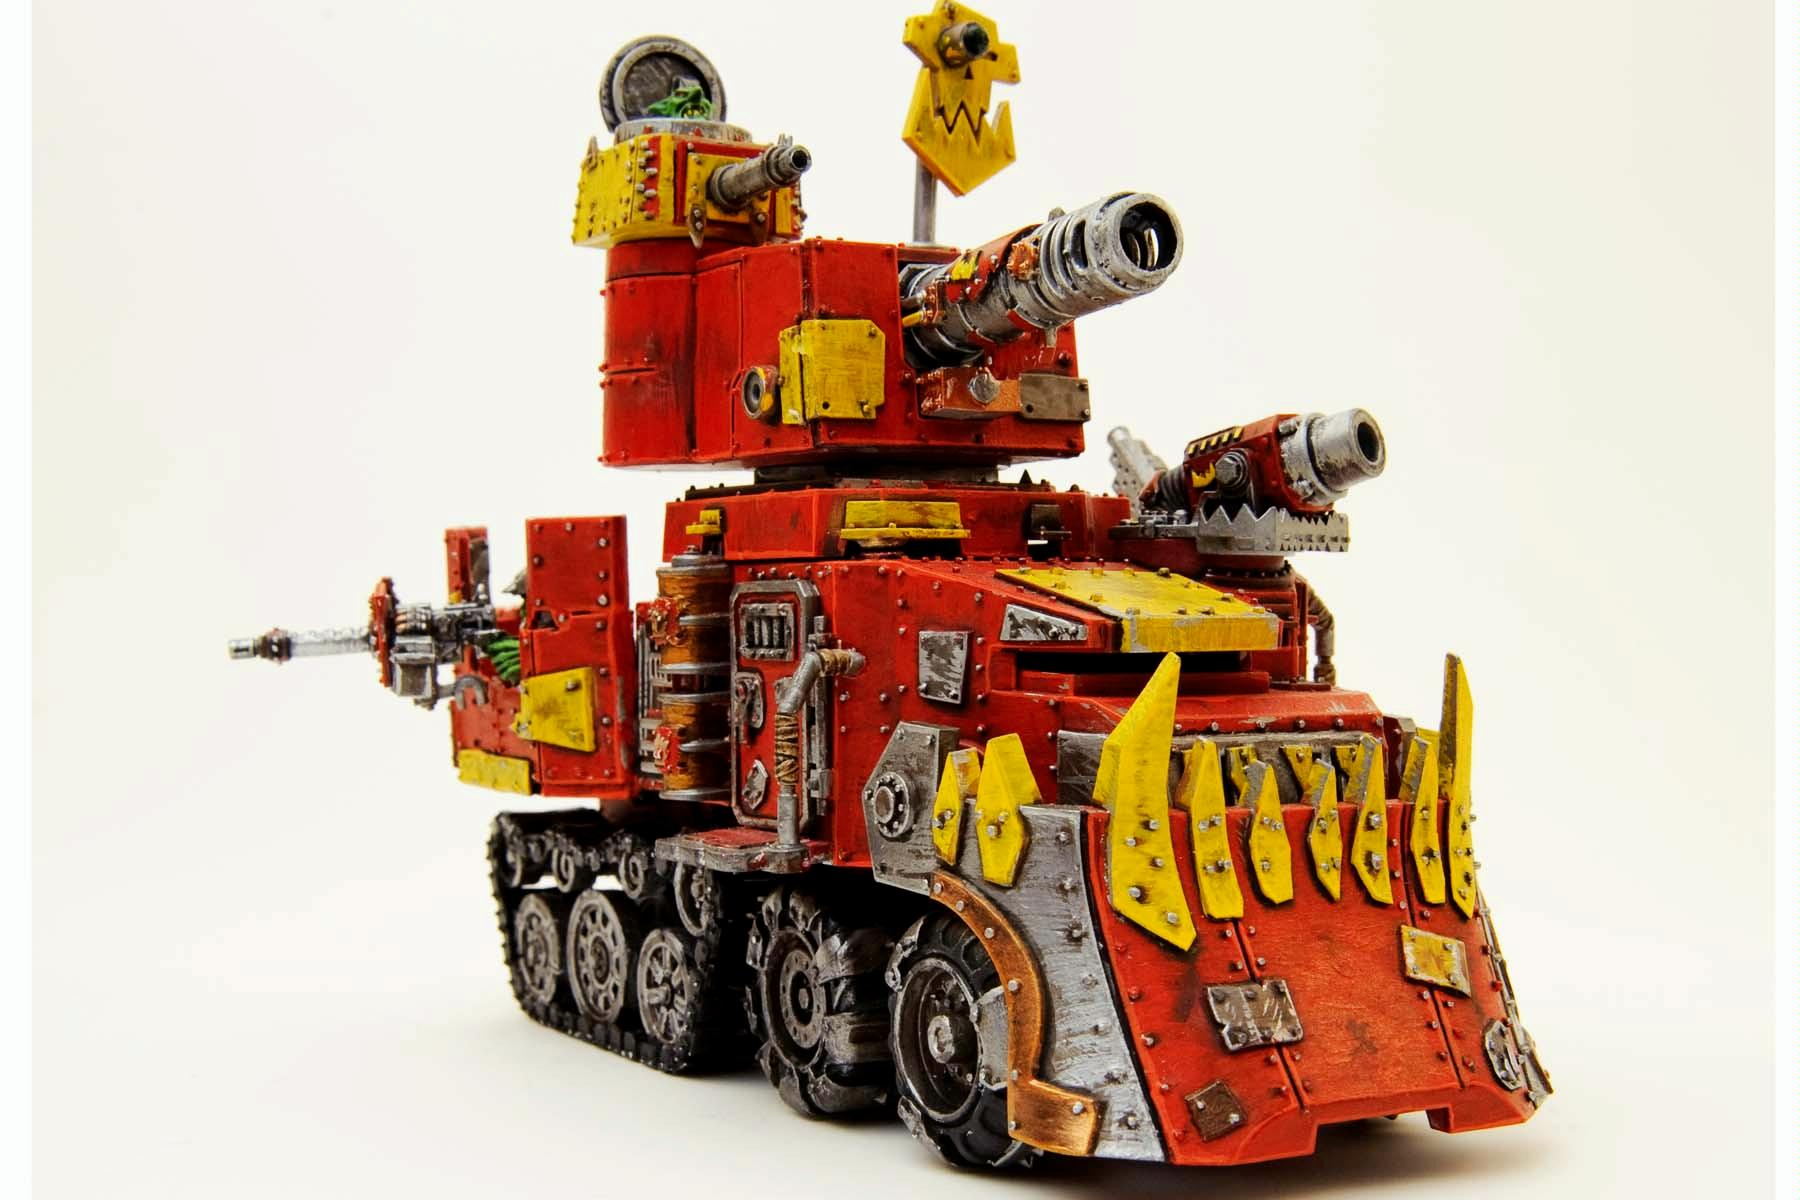 Battlewagon, Corporate, Humor, Mascot, Orks, Warhammer 40,000